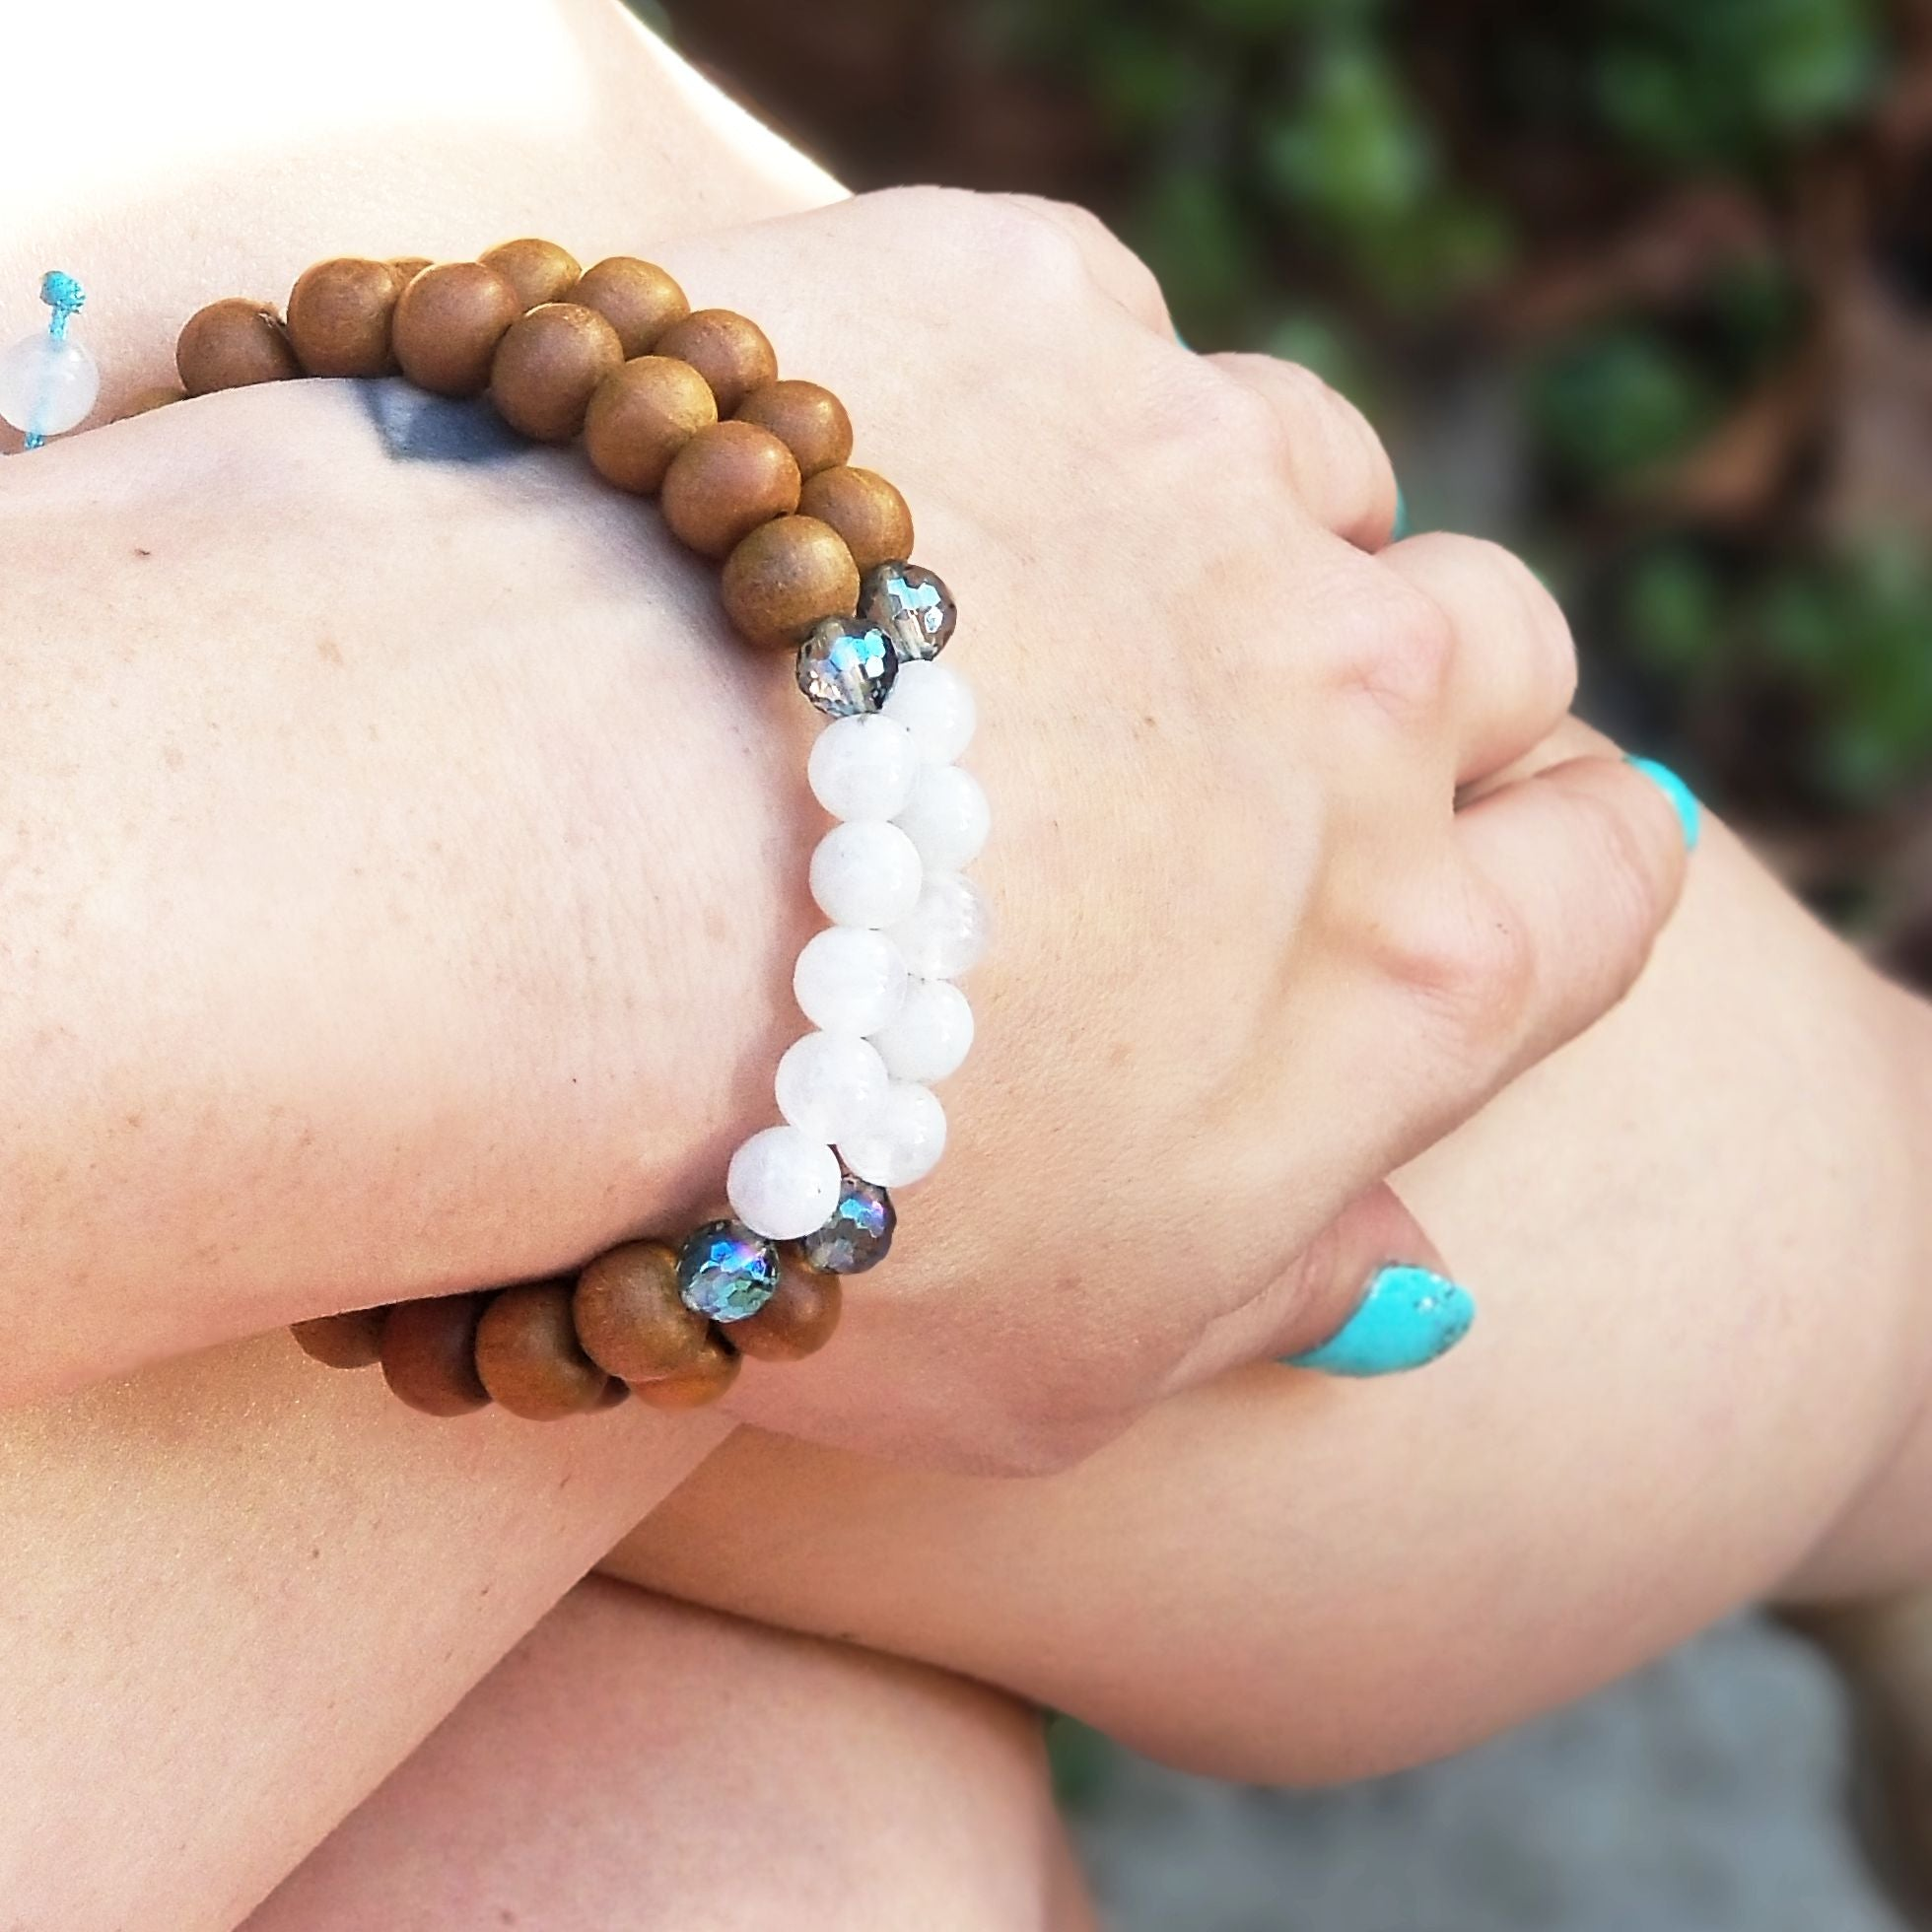 Soul Star Stack - Mala Beads Meditation Accessories and Yoga Jewelry by Tiny Devotions